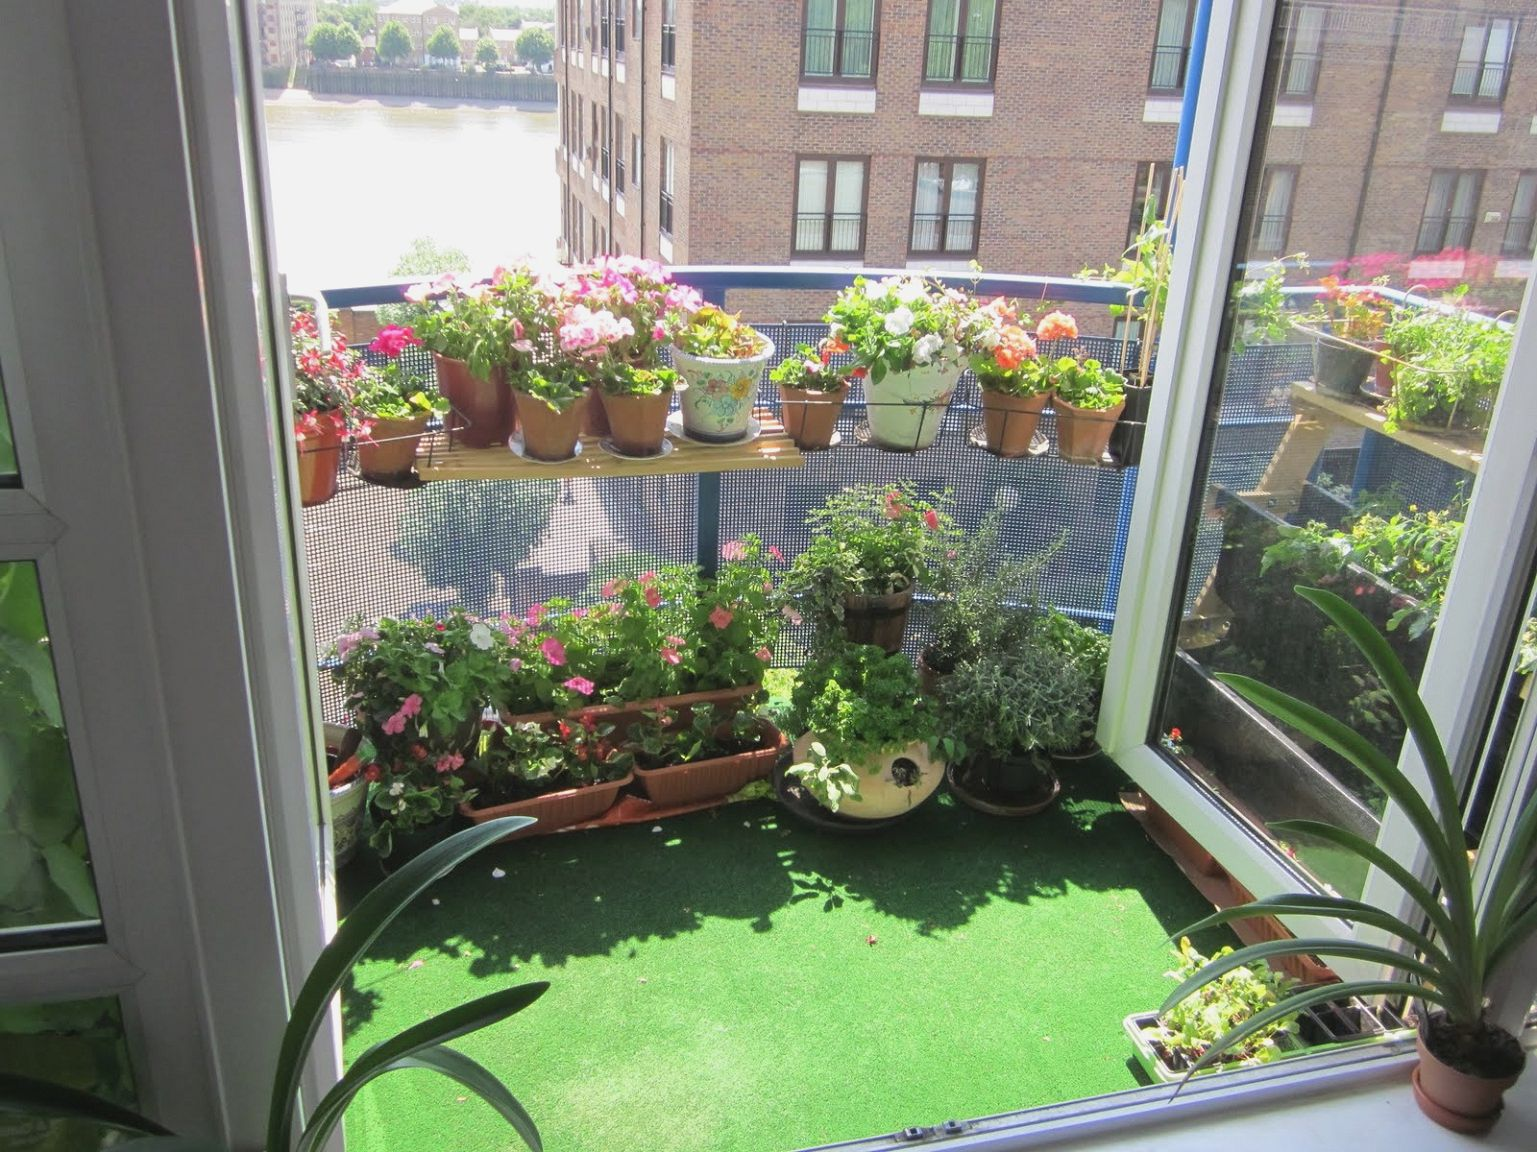 Urban green balcony garden with a green carpet